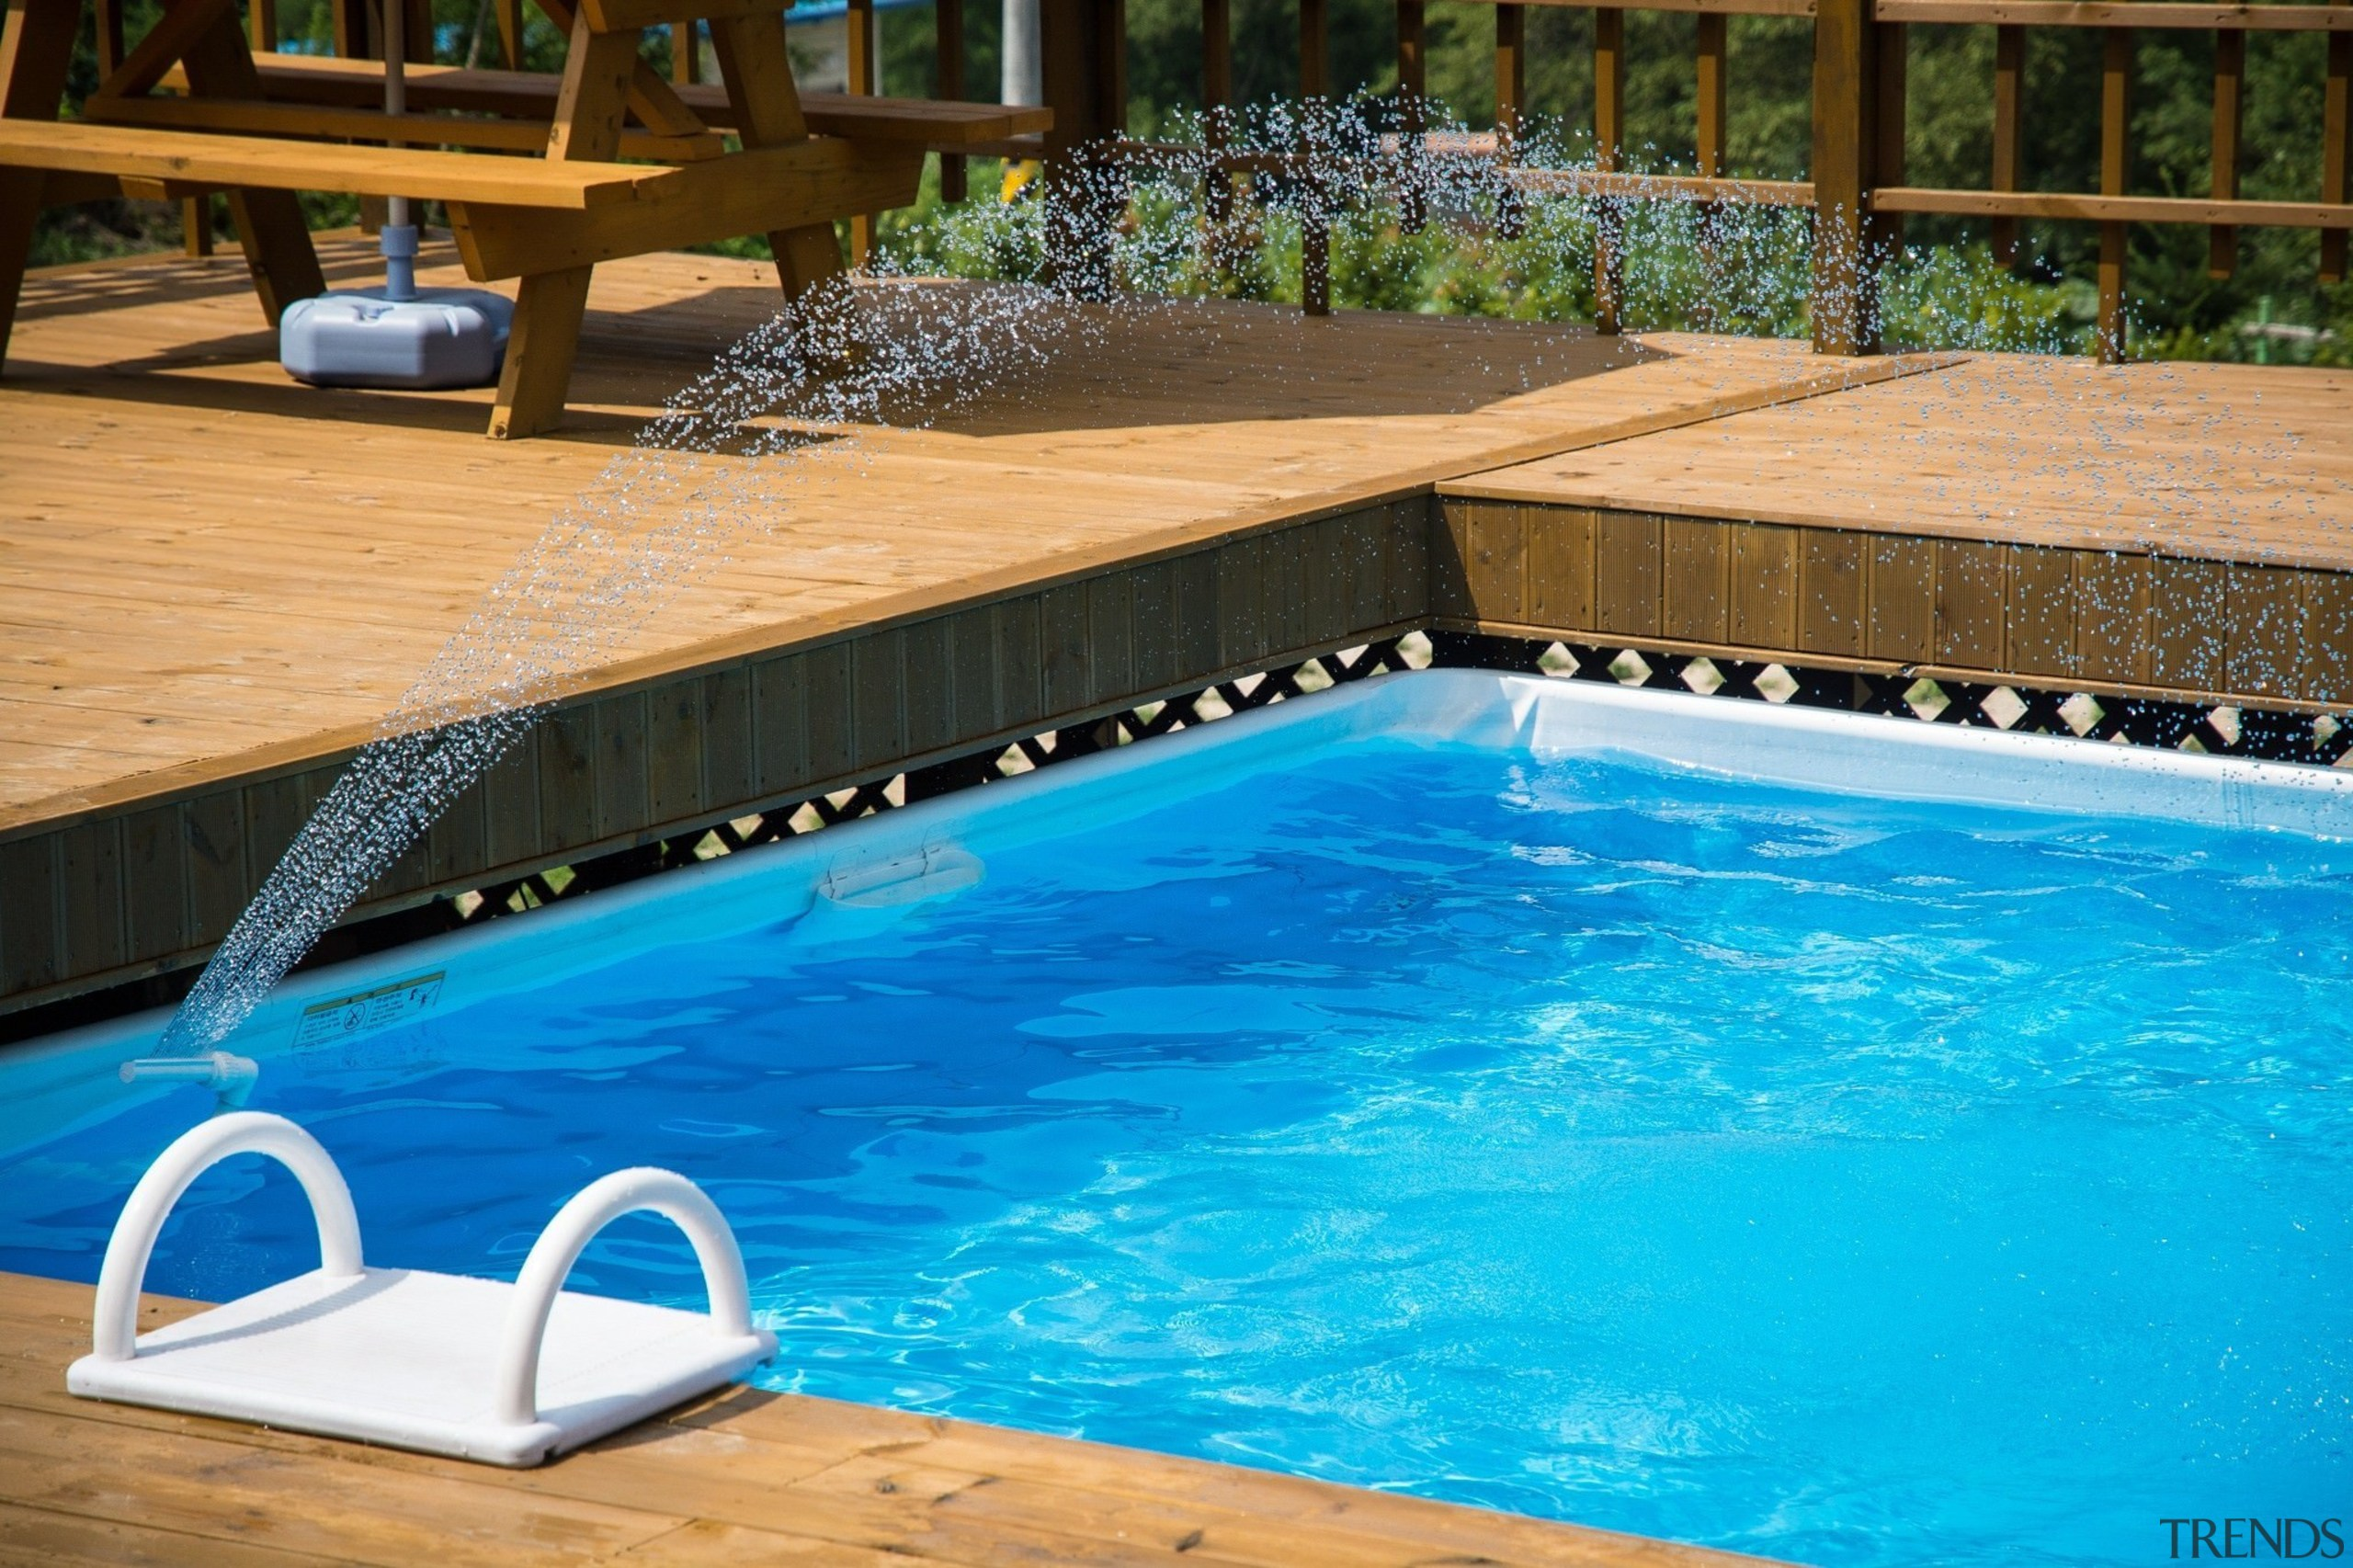 Adding sprinklers makes for a fun addition - leisure, leisure centre, property, swimming pool, water, teal